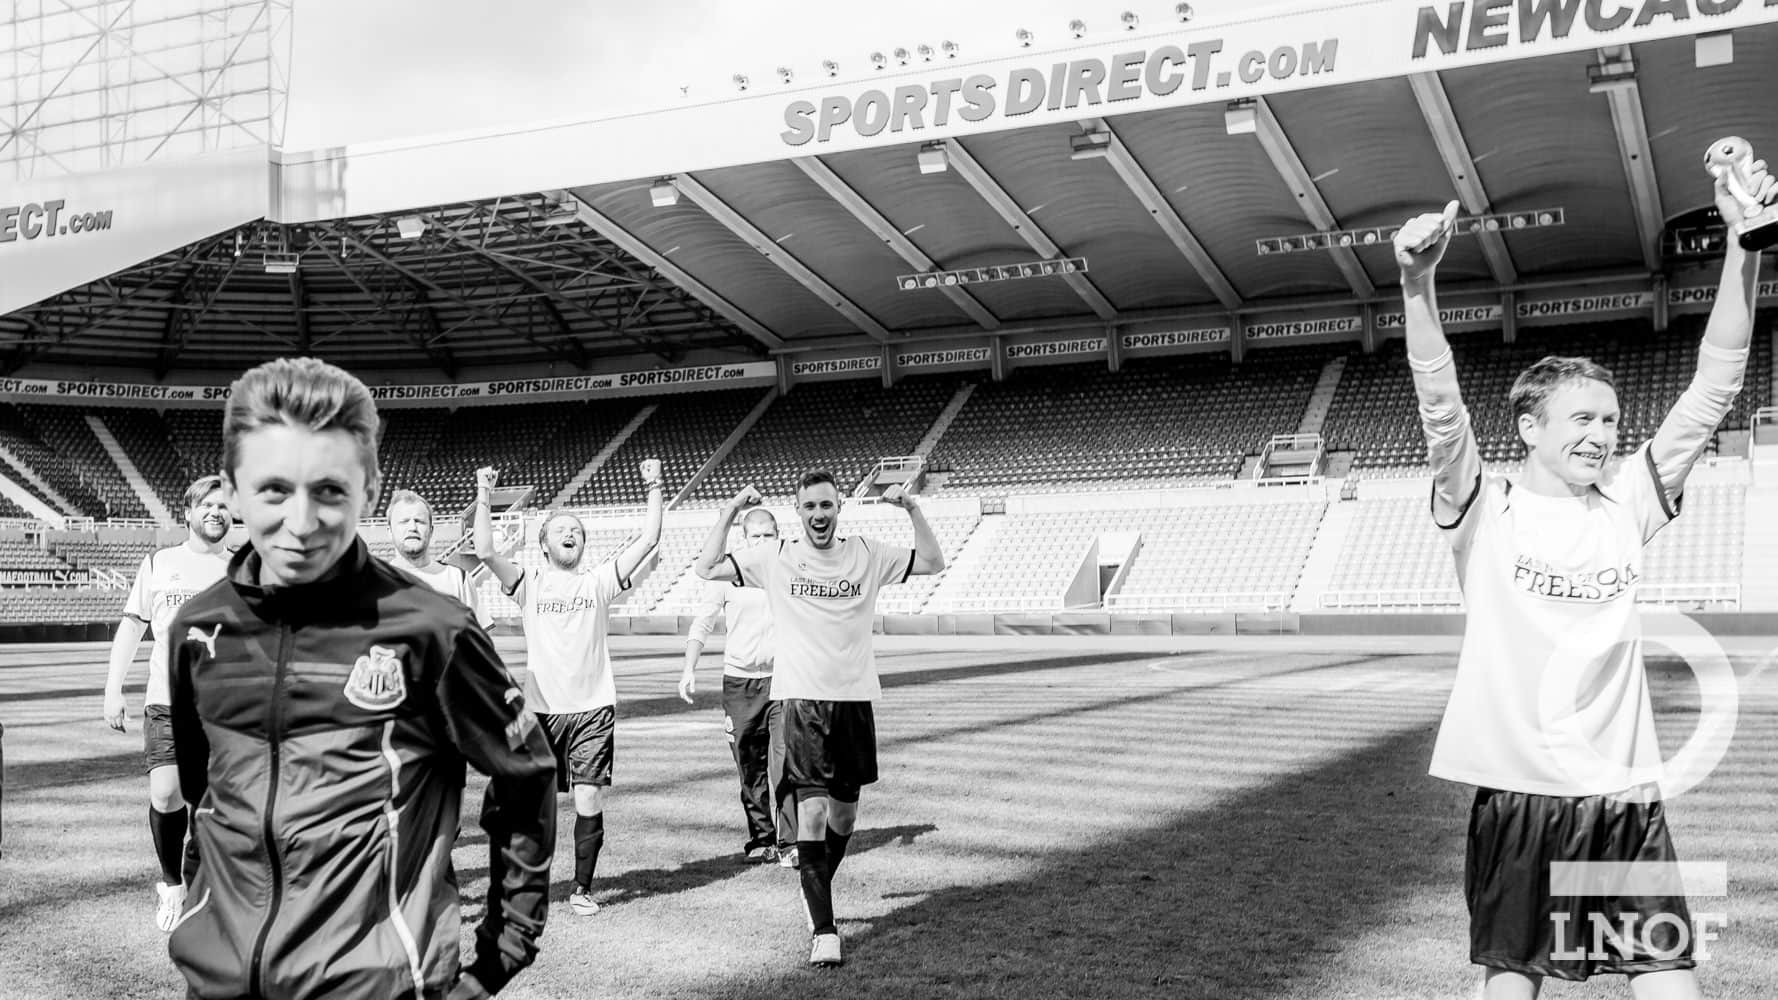 Footballers walking off the pitch at St James' Park